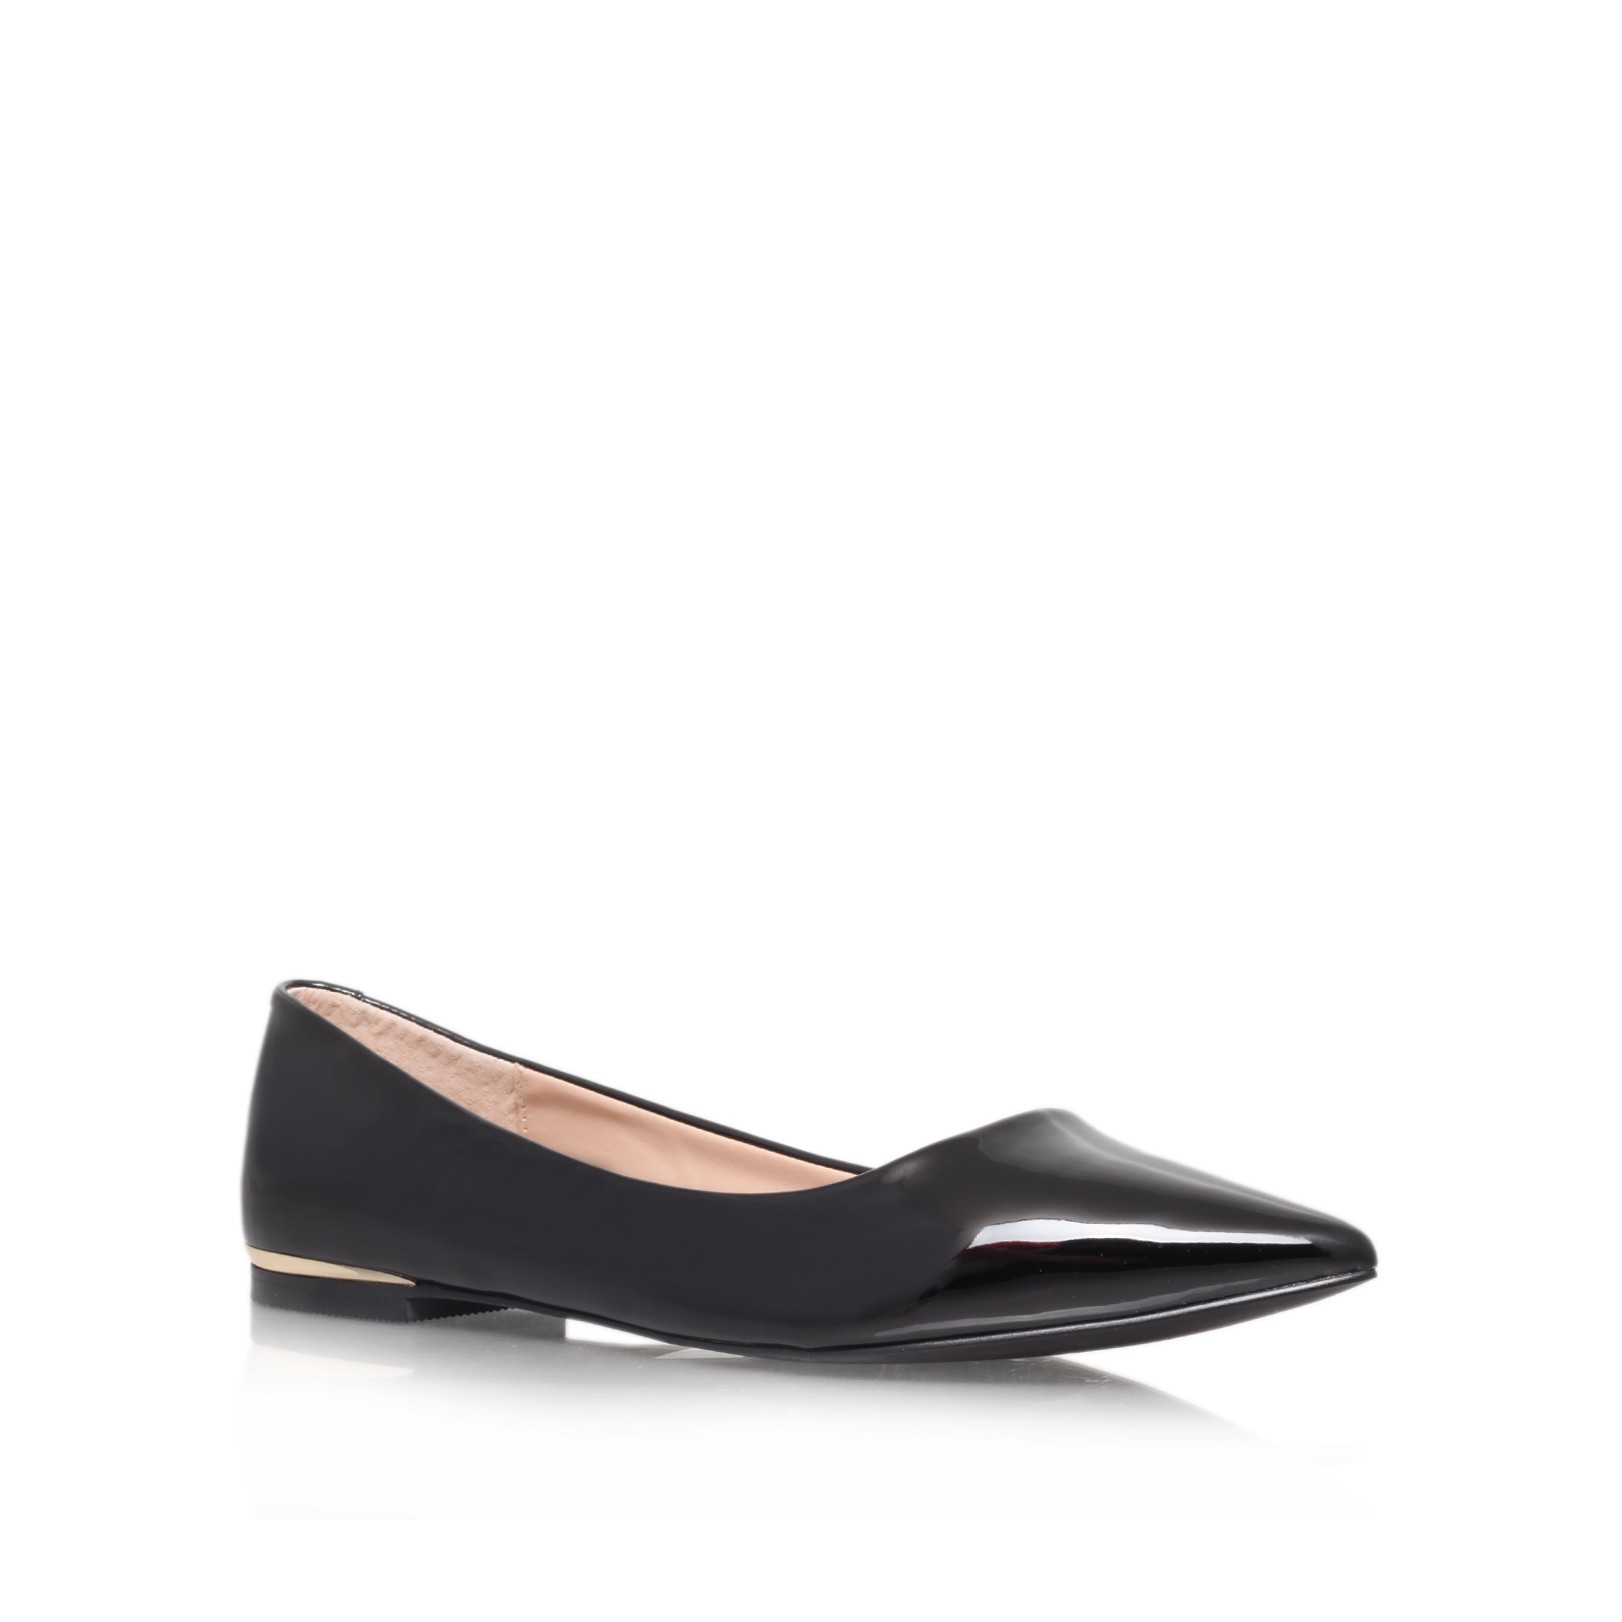 carvela kurt geiger minnie flat court shoes in black lyst